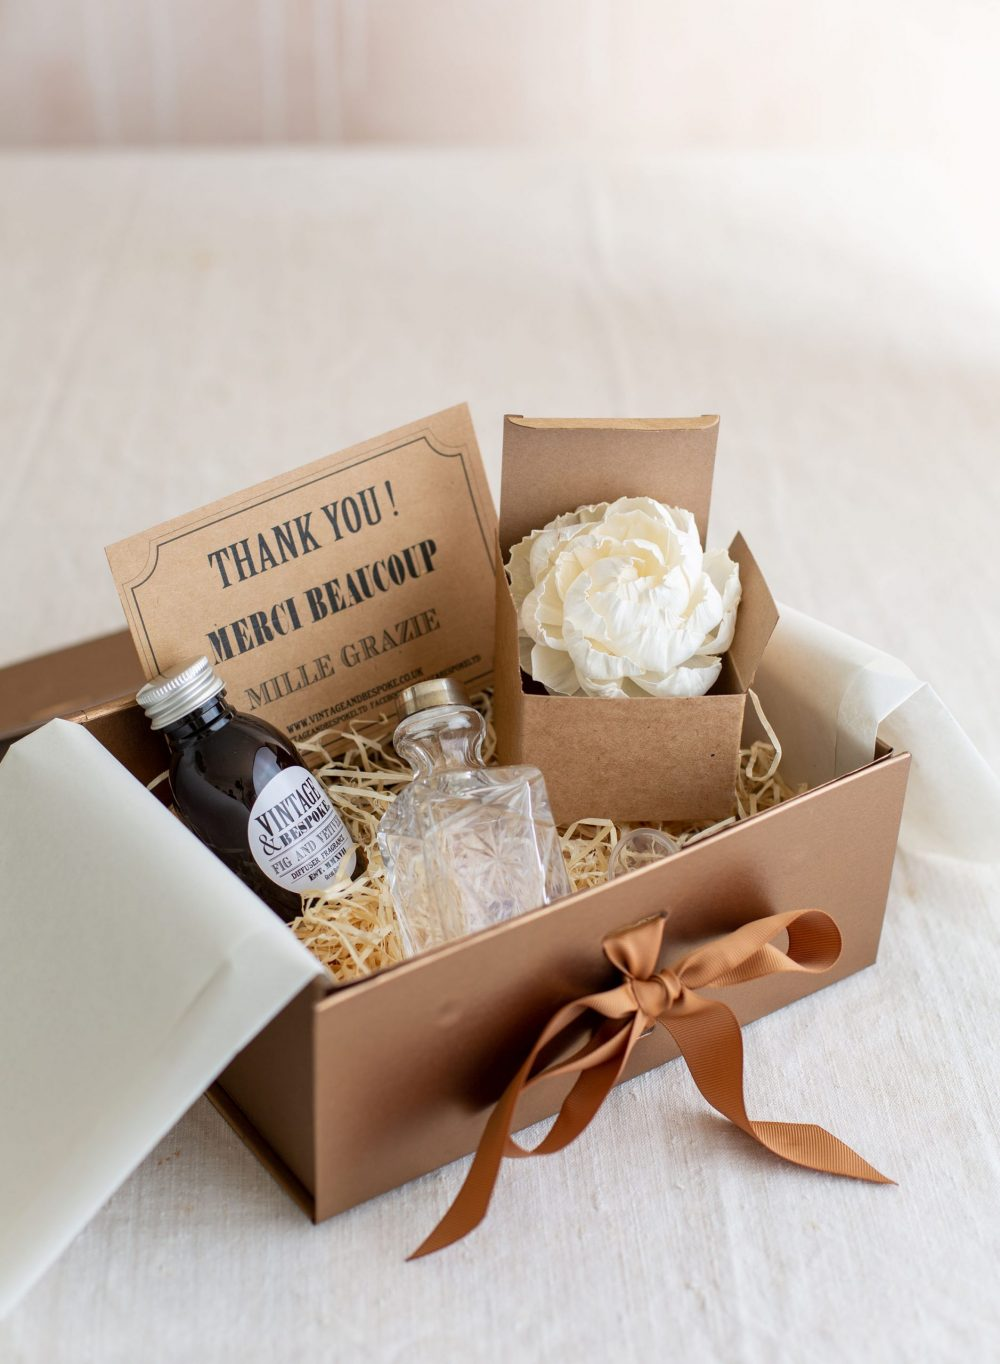 Luxury Flower Diffuser Gift Box from Vintage and Bespoke